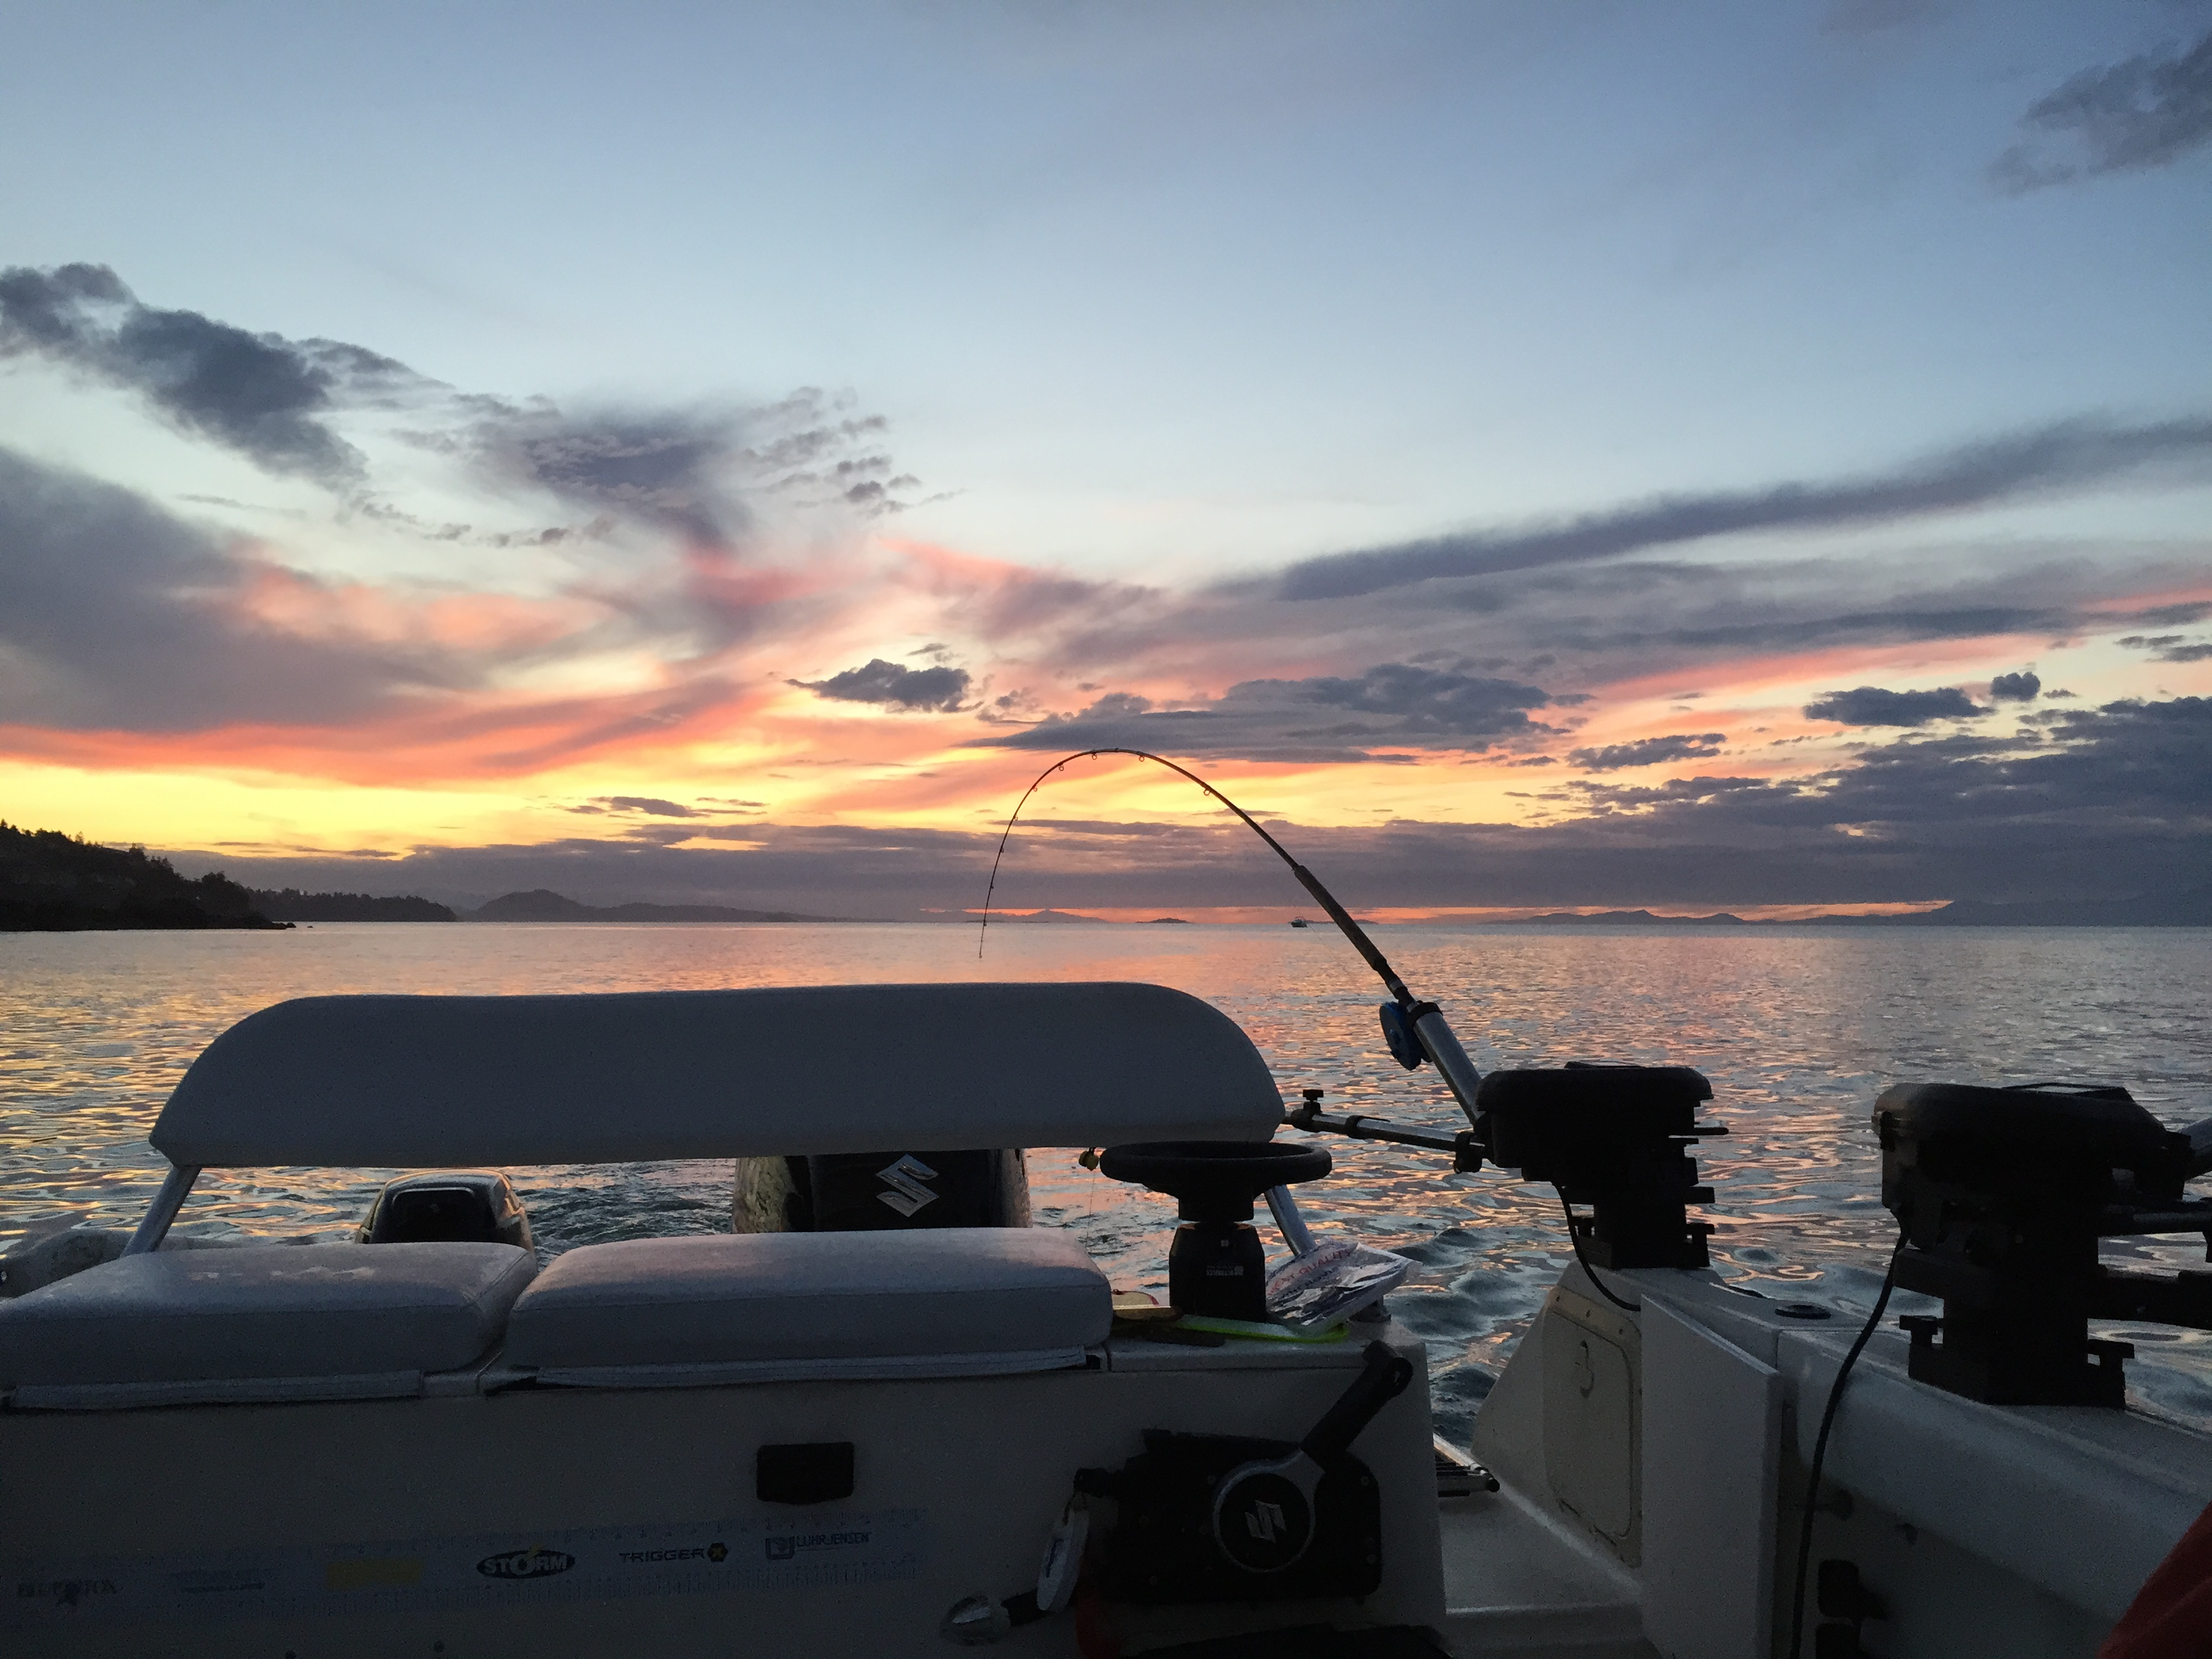 Sunset fishing charter in Nanaimo